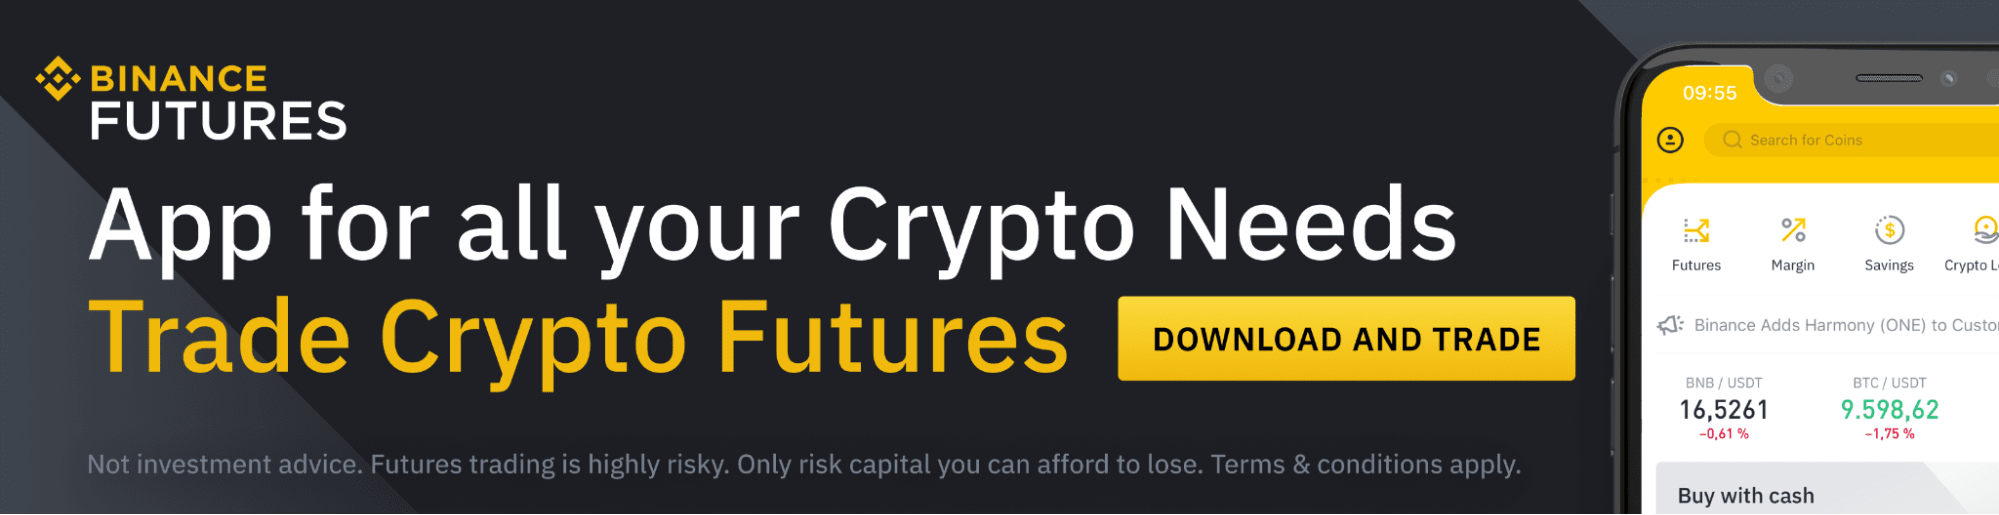 Crypto Futures Basics: What is Liquidation and How to Avoid it?Cryptocurrency Trading Signals, Strategies & Templates   DexStrats